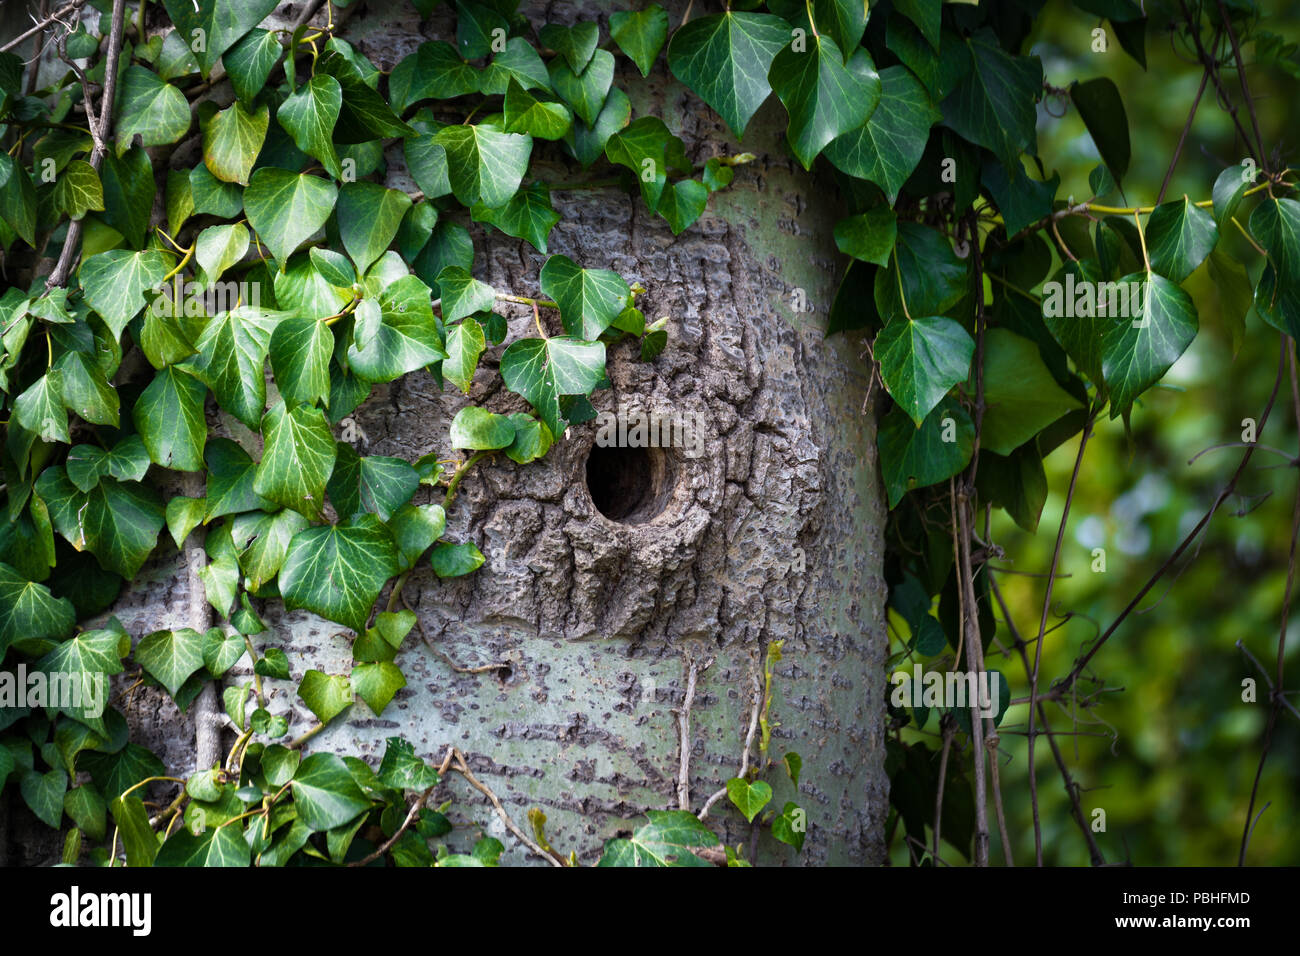 Woodpecker cavity on a trunck, leaves in the background - Stock Image